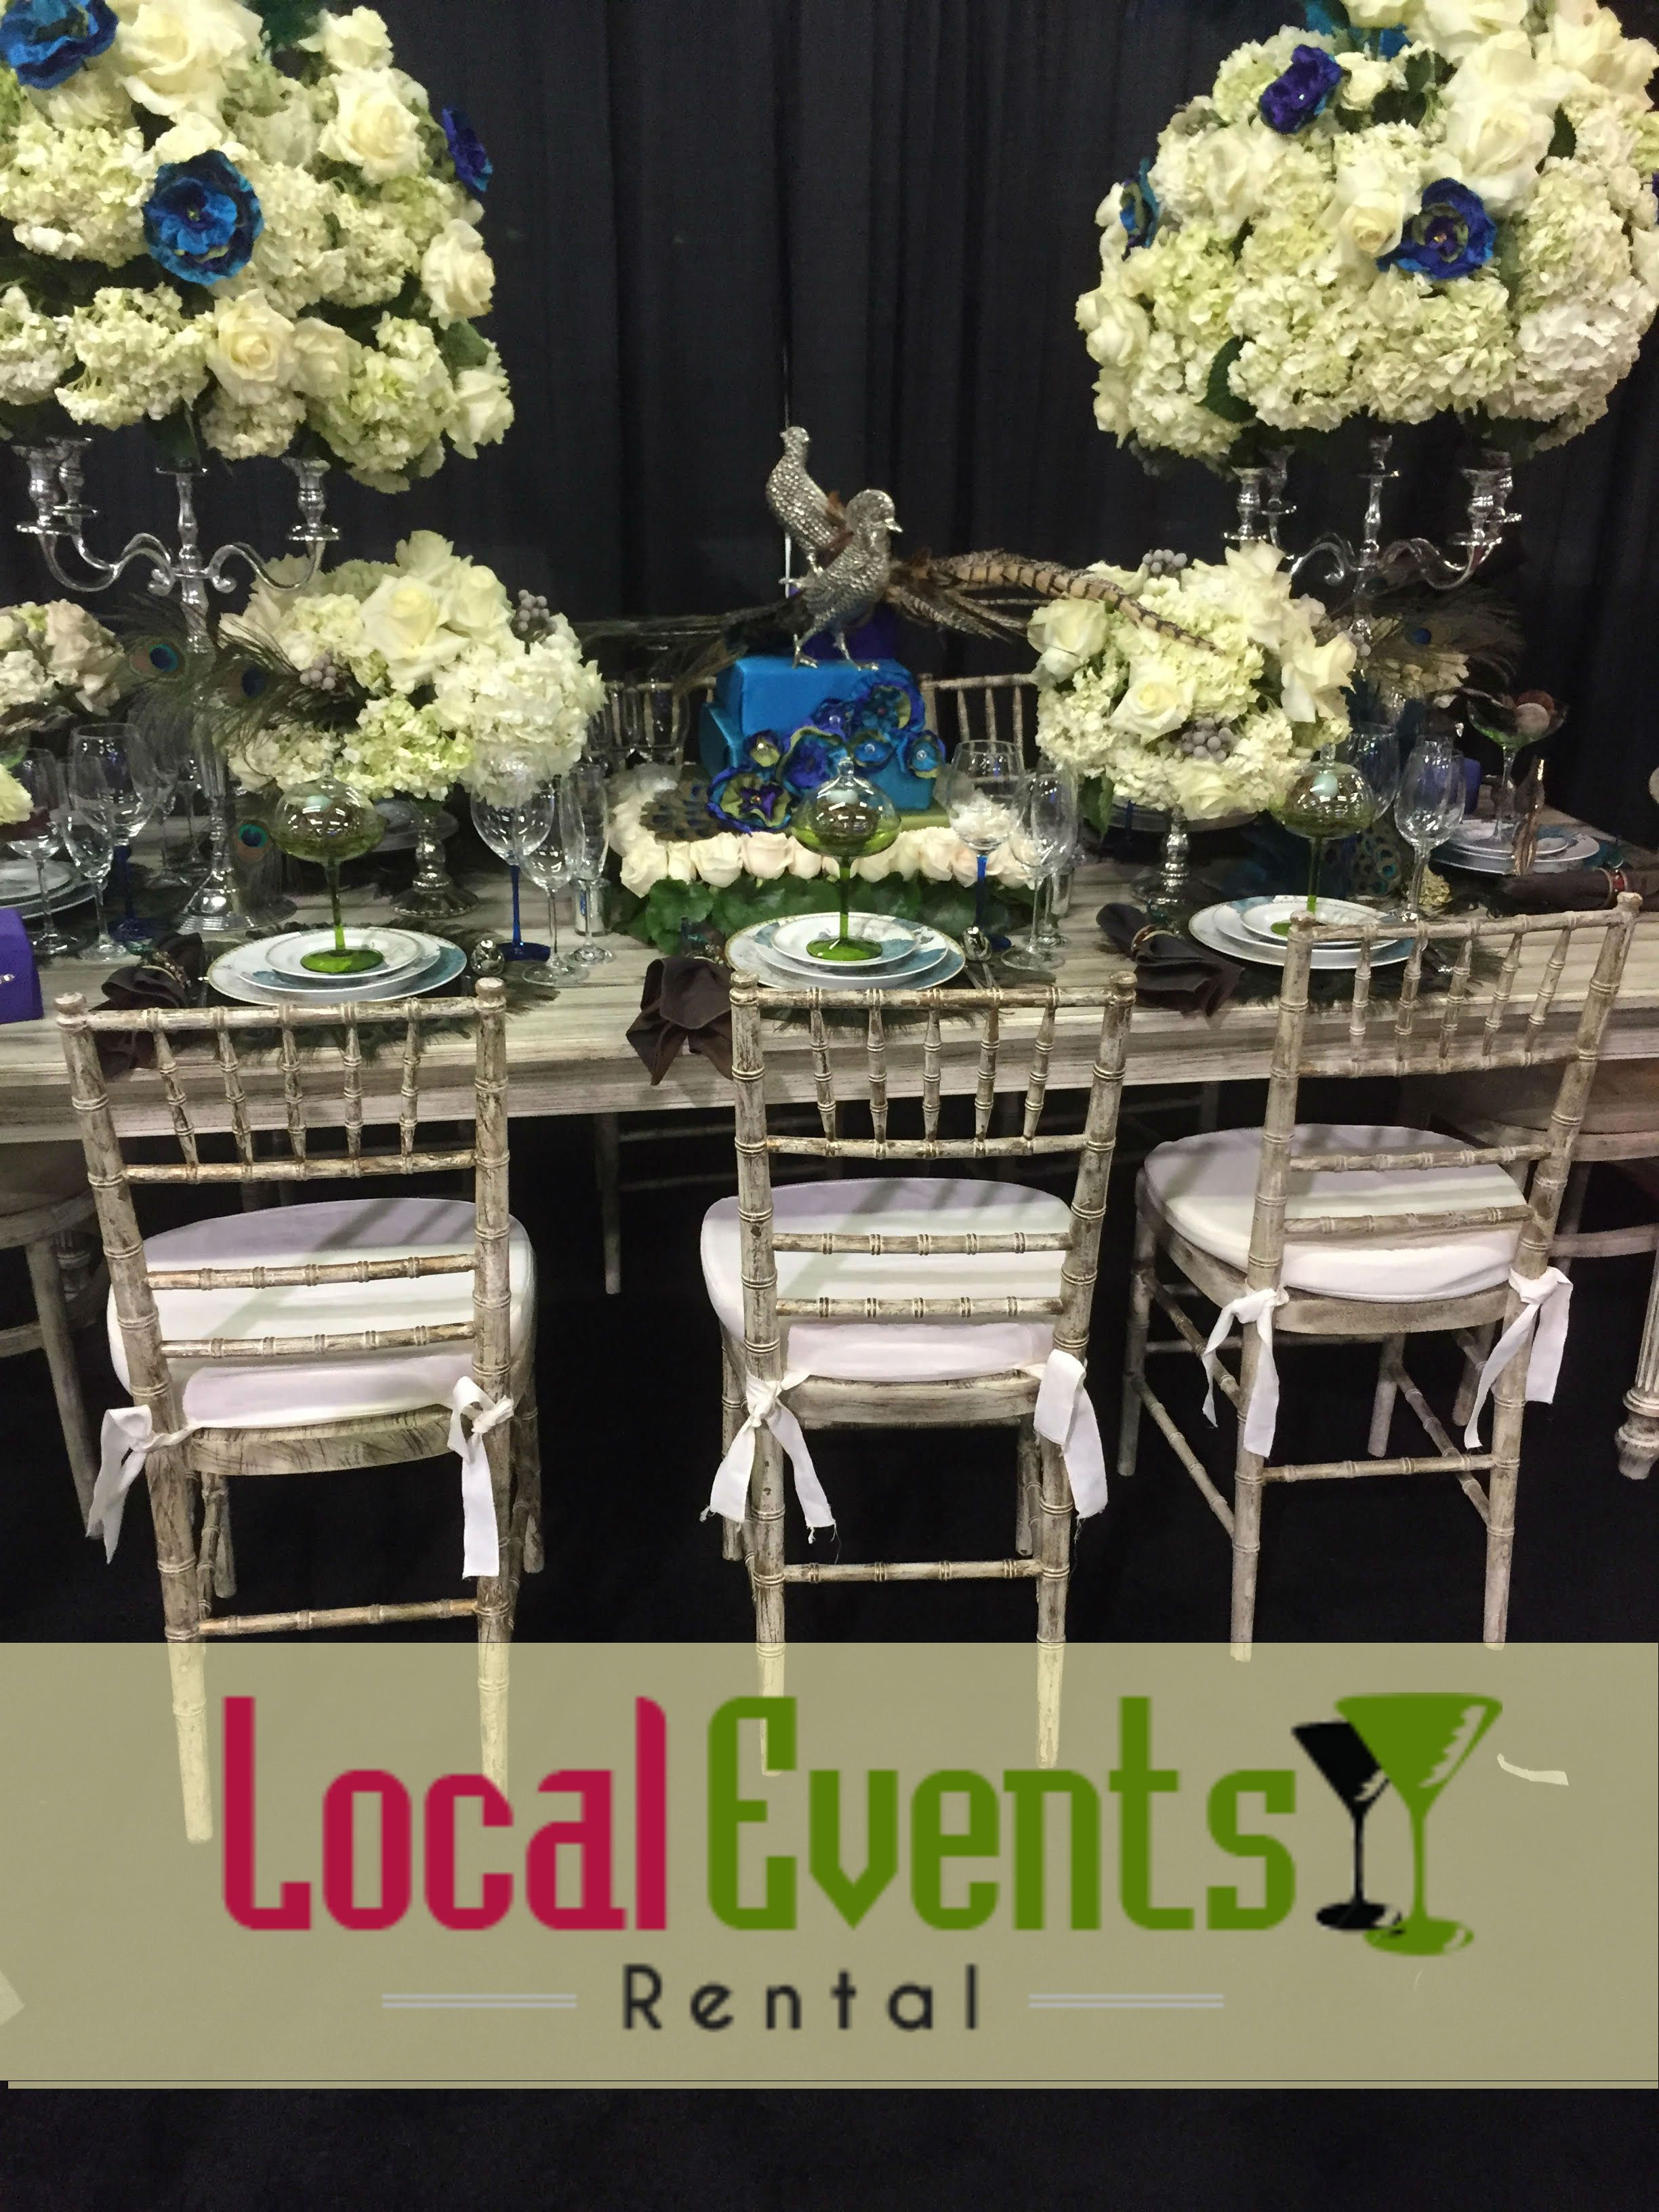 Local Events Rental Of Small To Large Wedding Rentals Party Tents Rentals Portable Dance